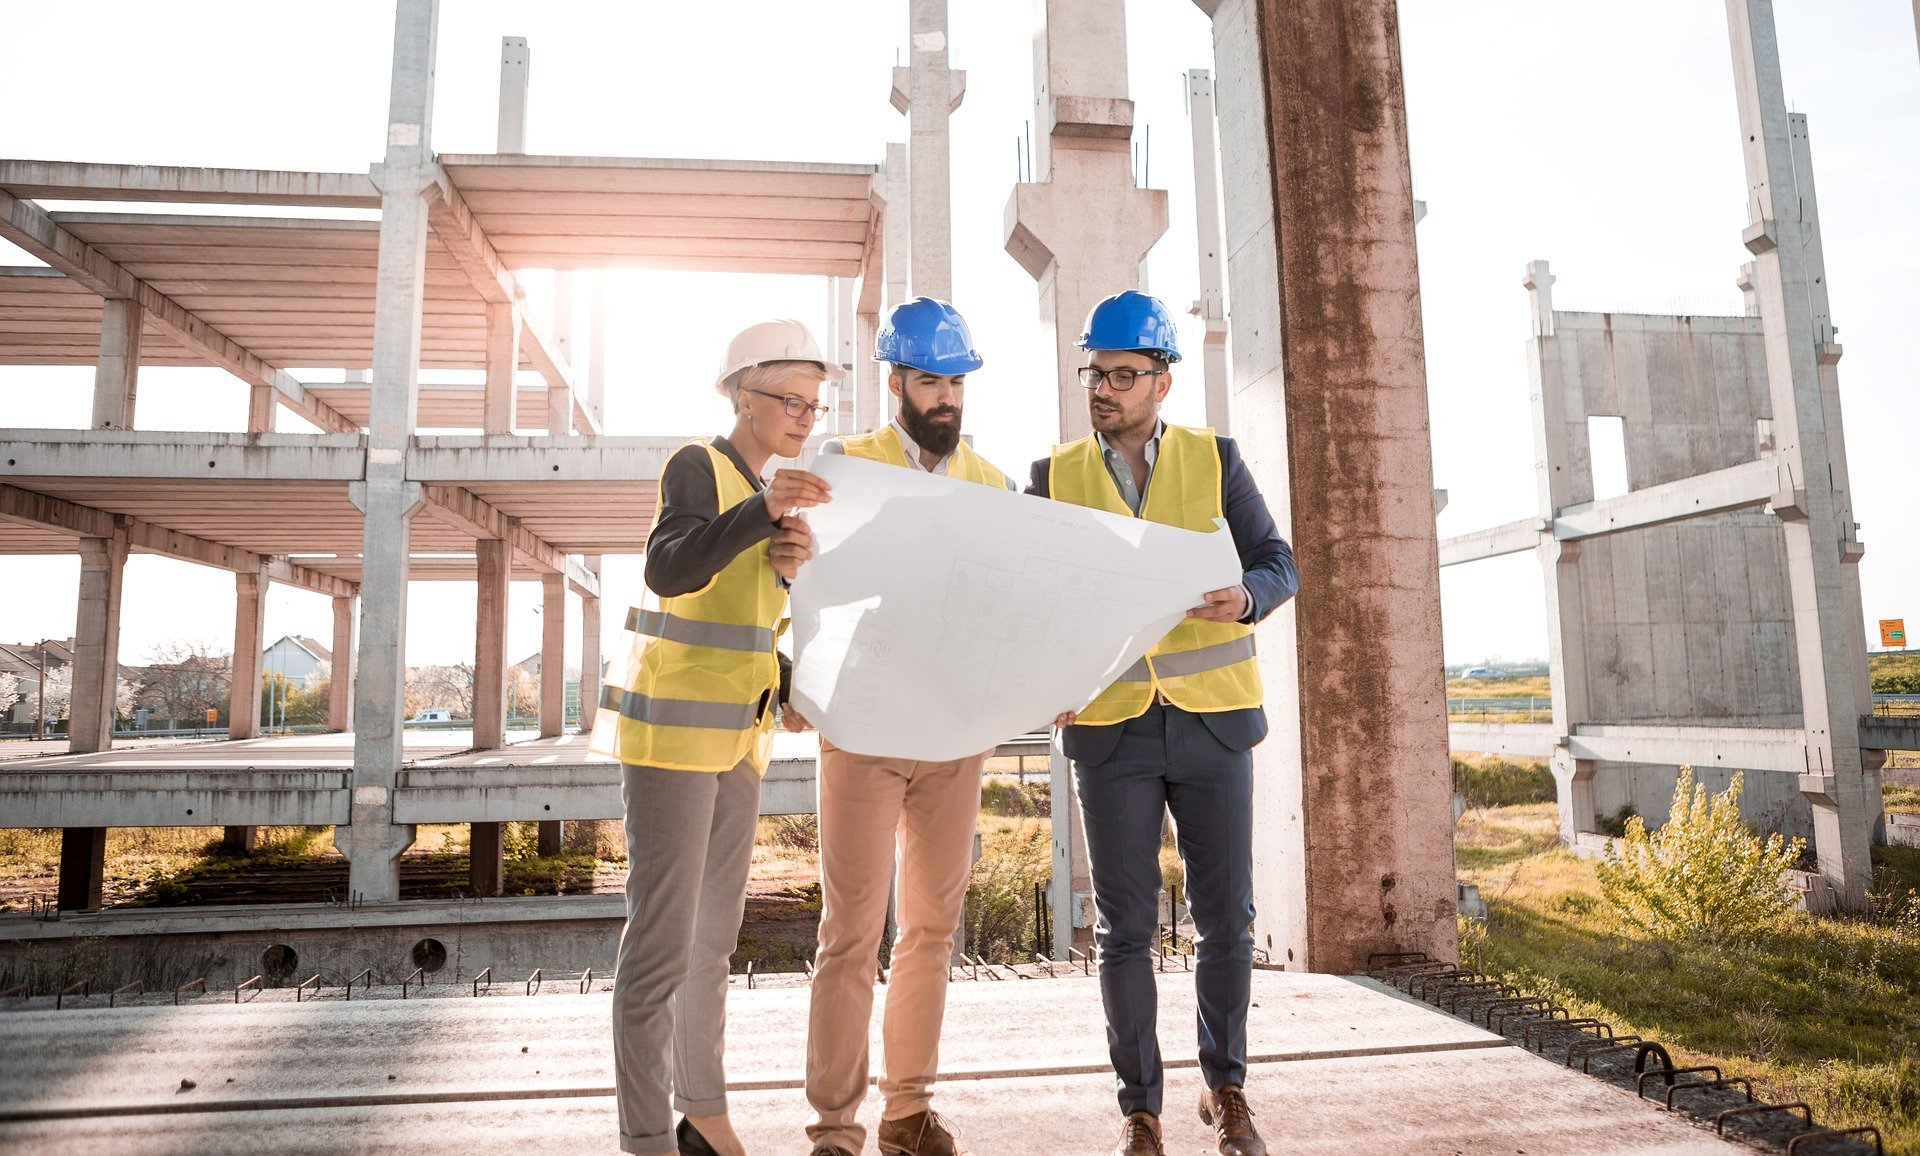 Engineers inspect a building plan in front of a construction site